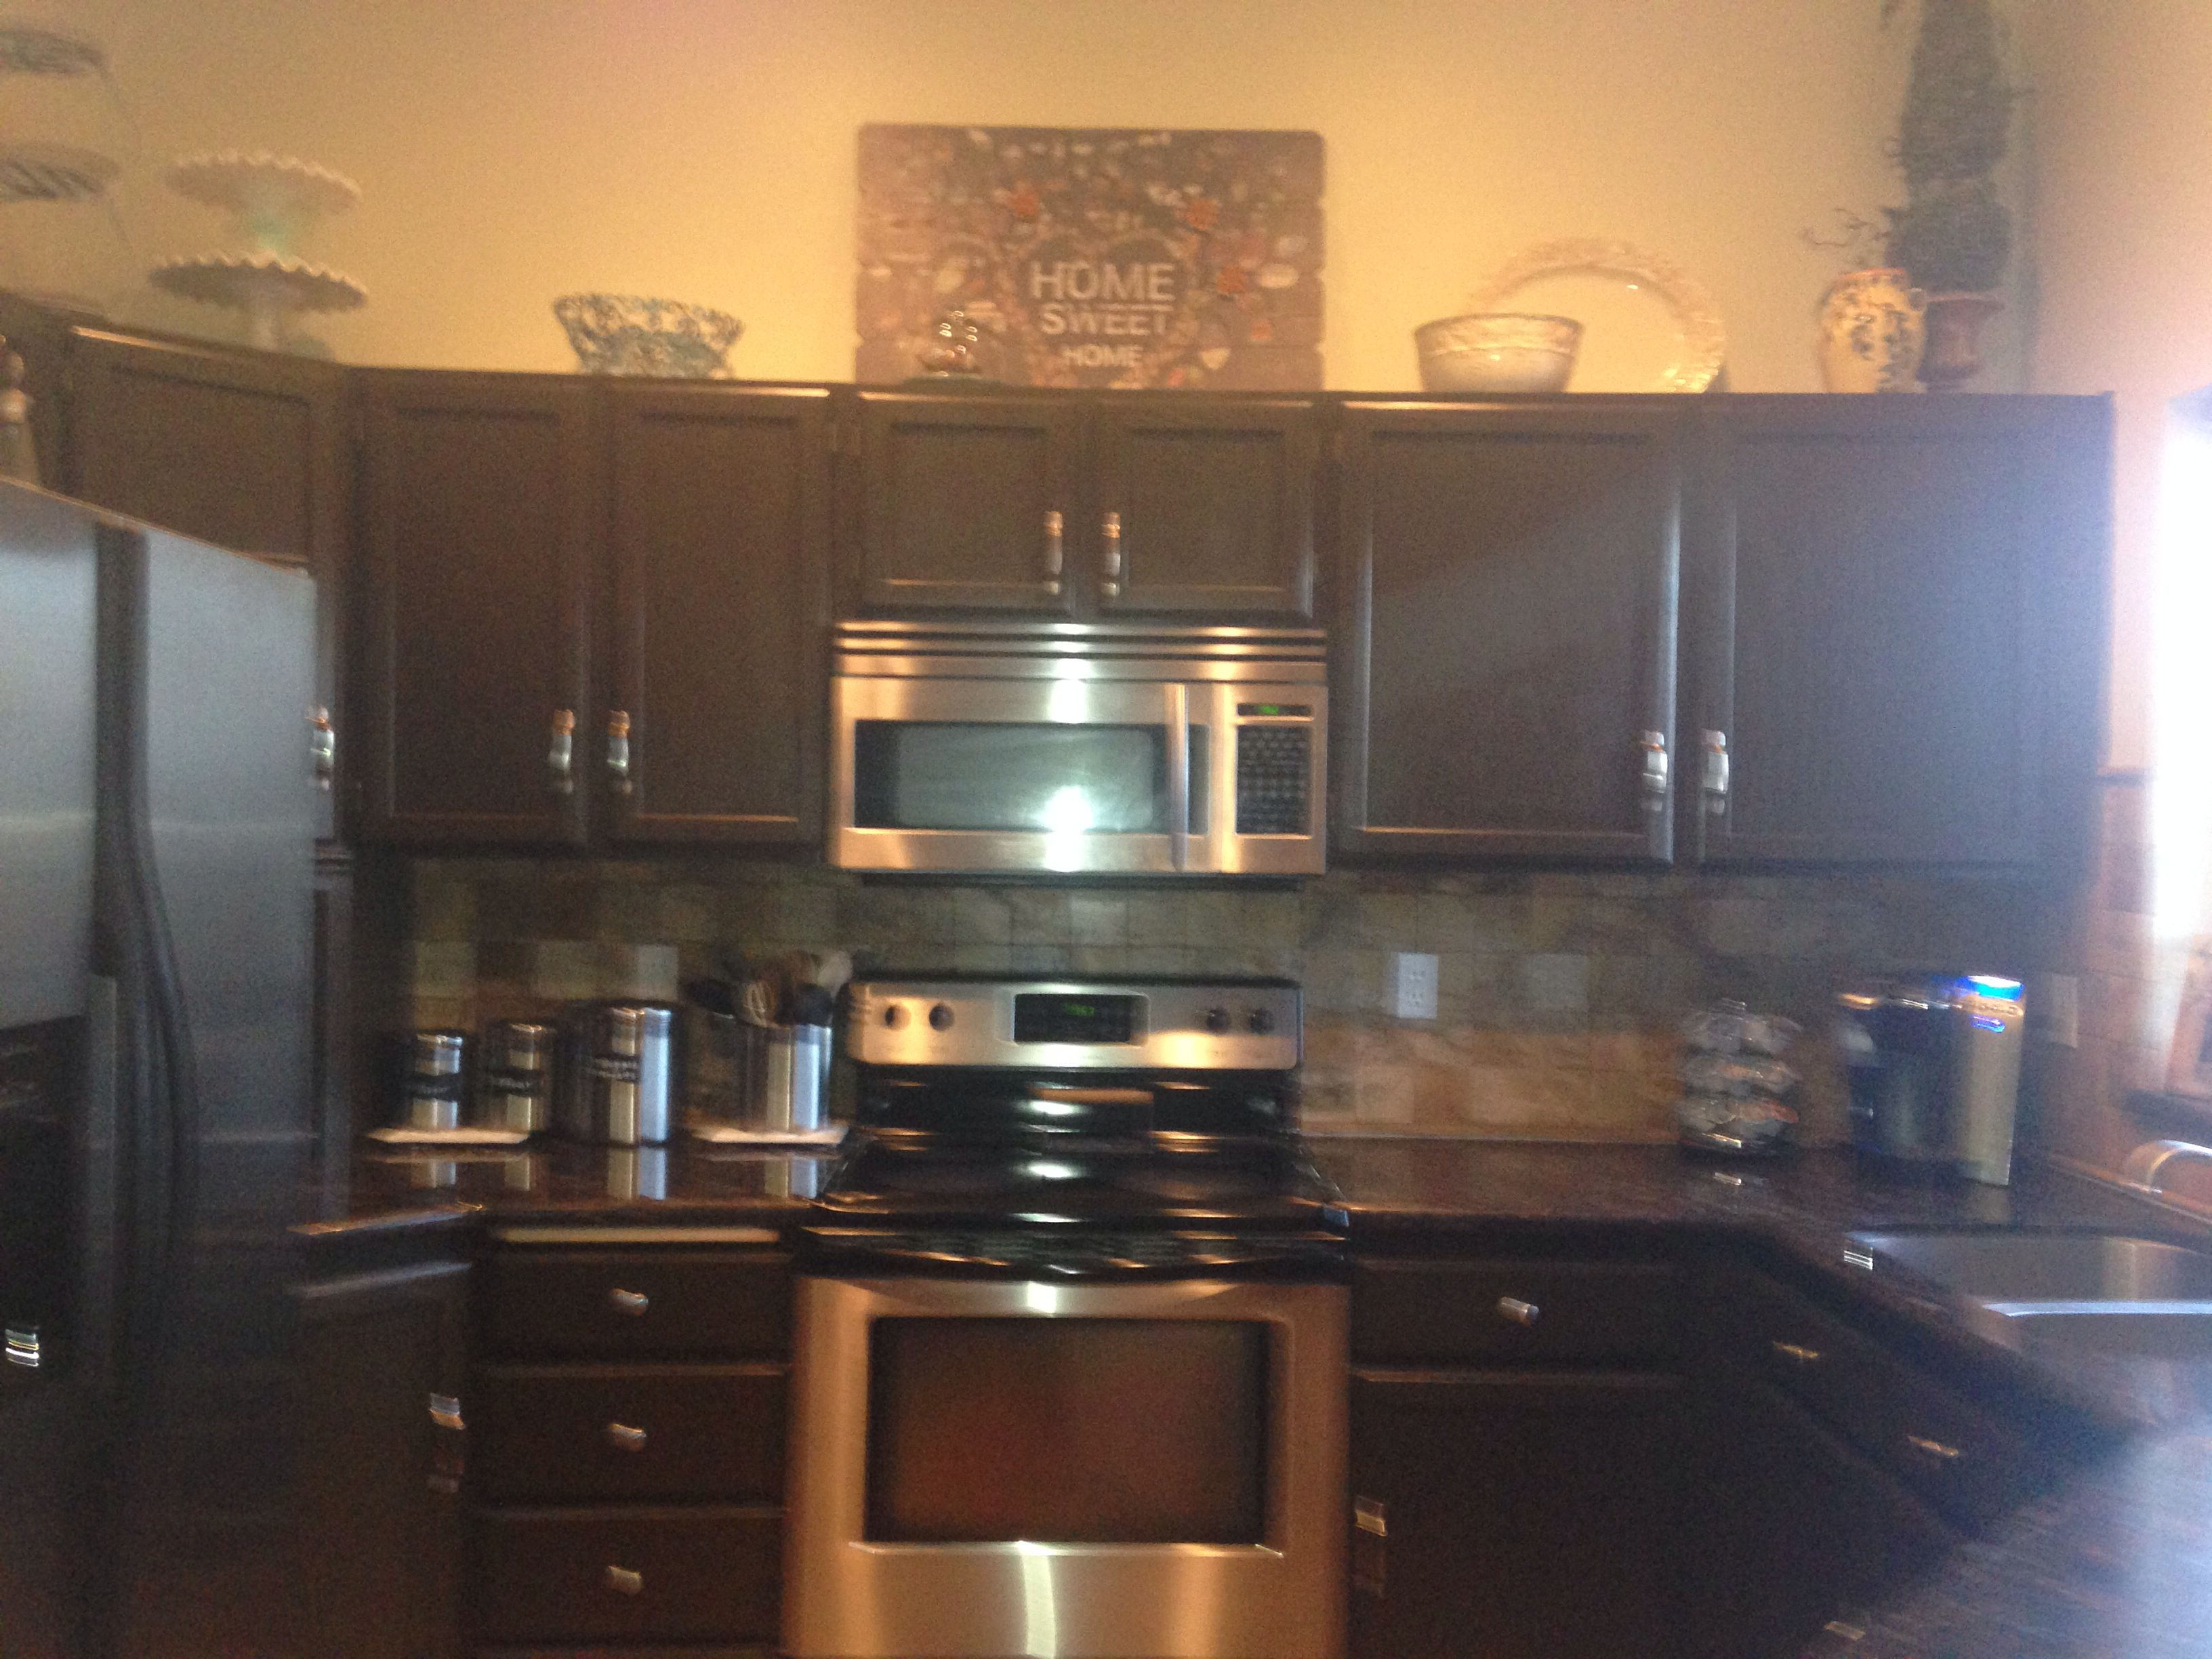 painted kitchen cabinets behr espresso bean satin finish - Behr Paint Kitchen Cabinets